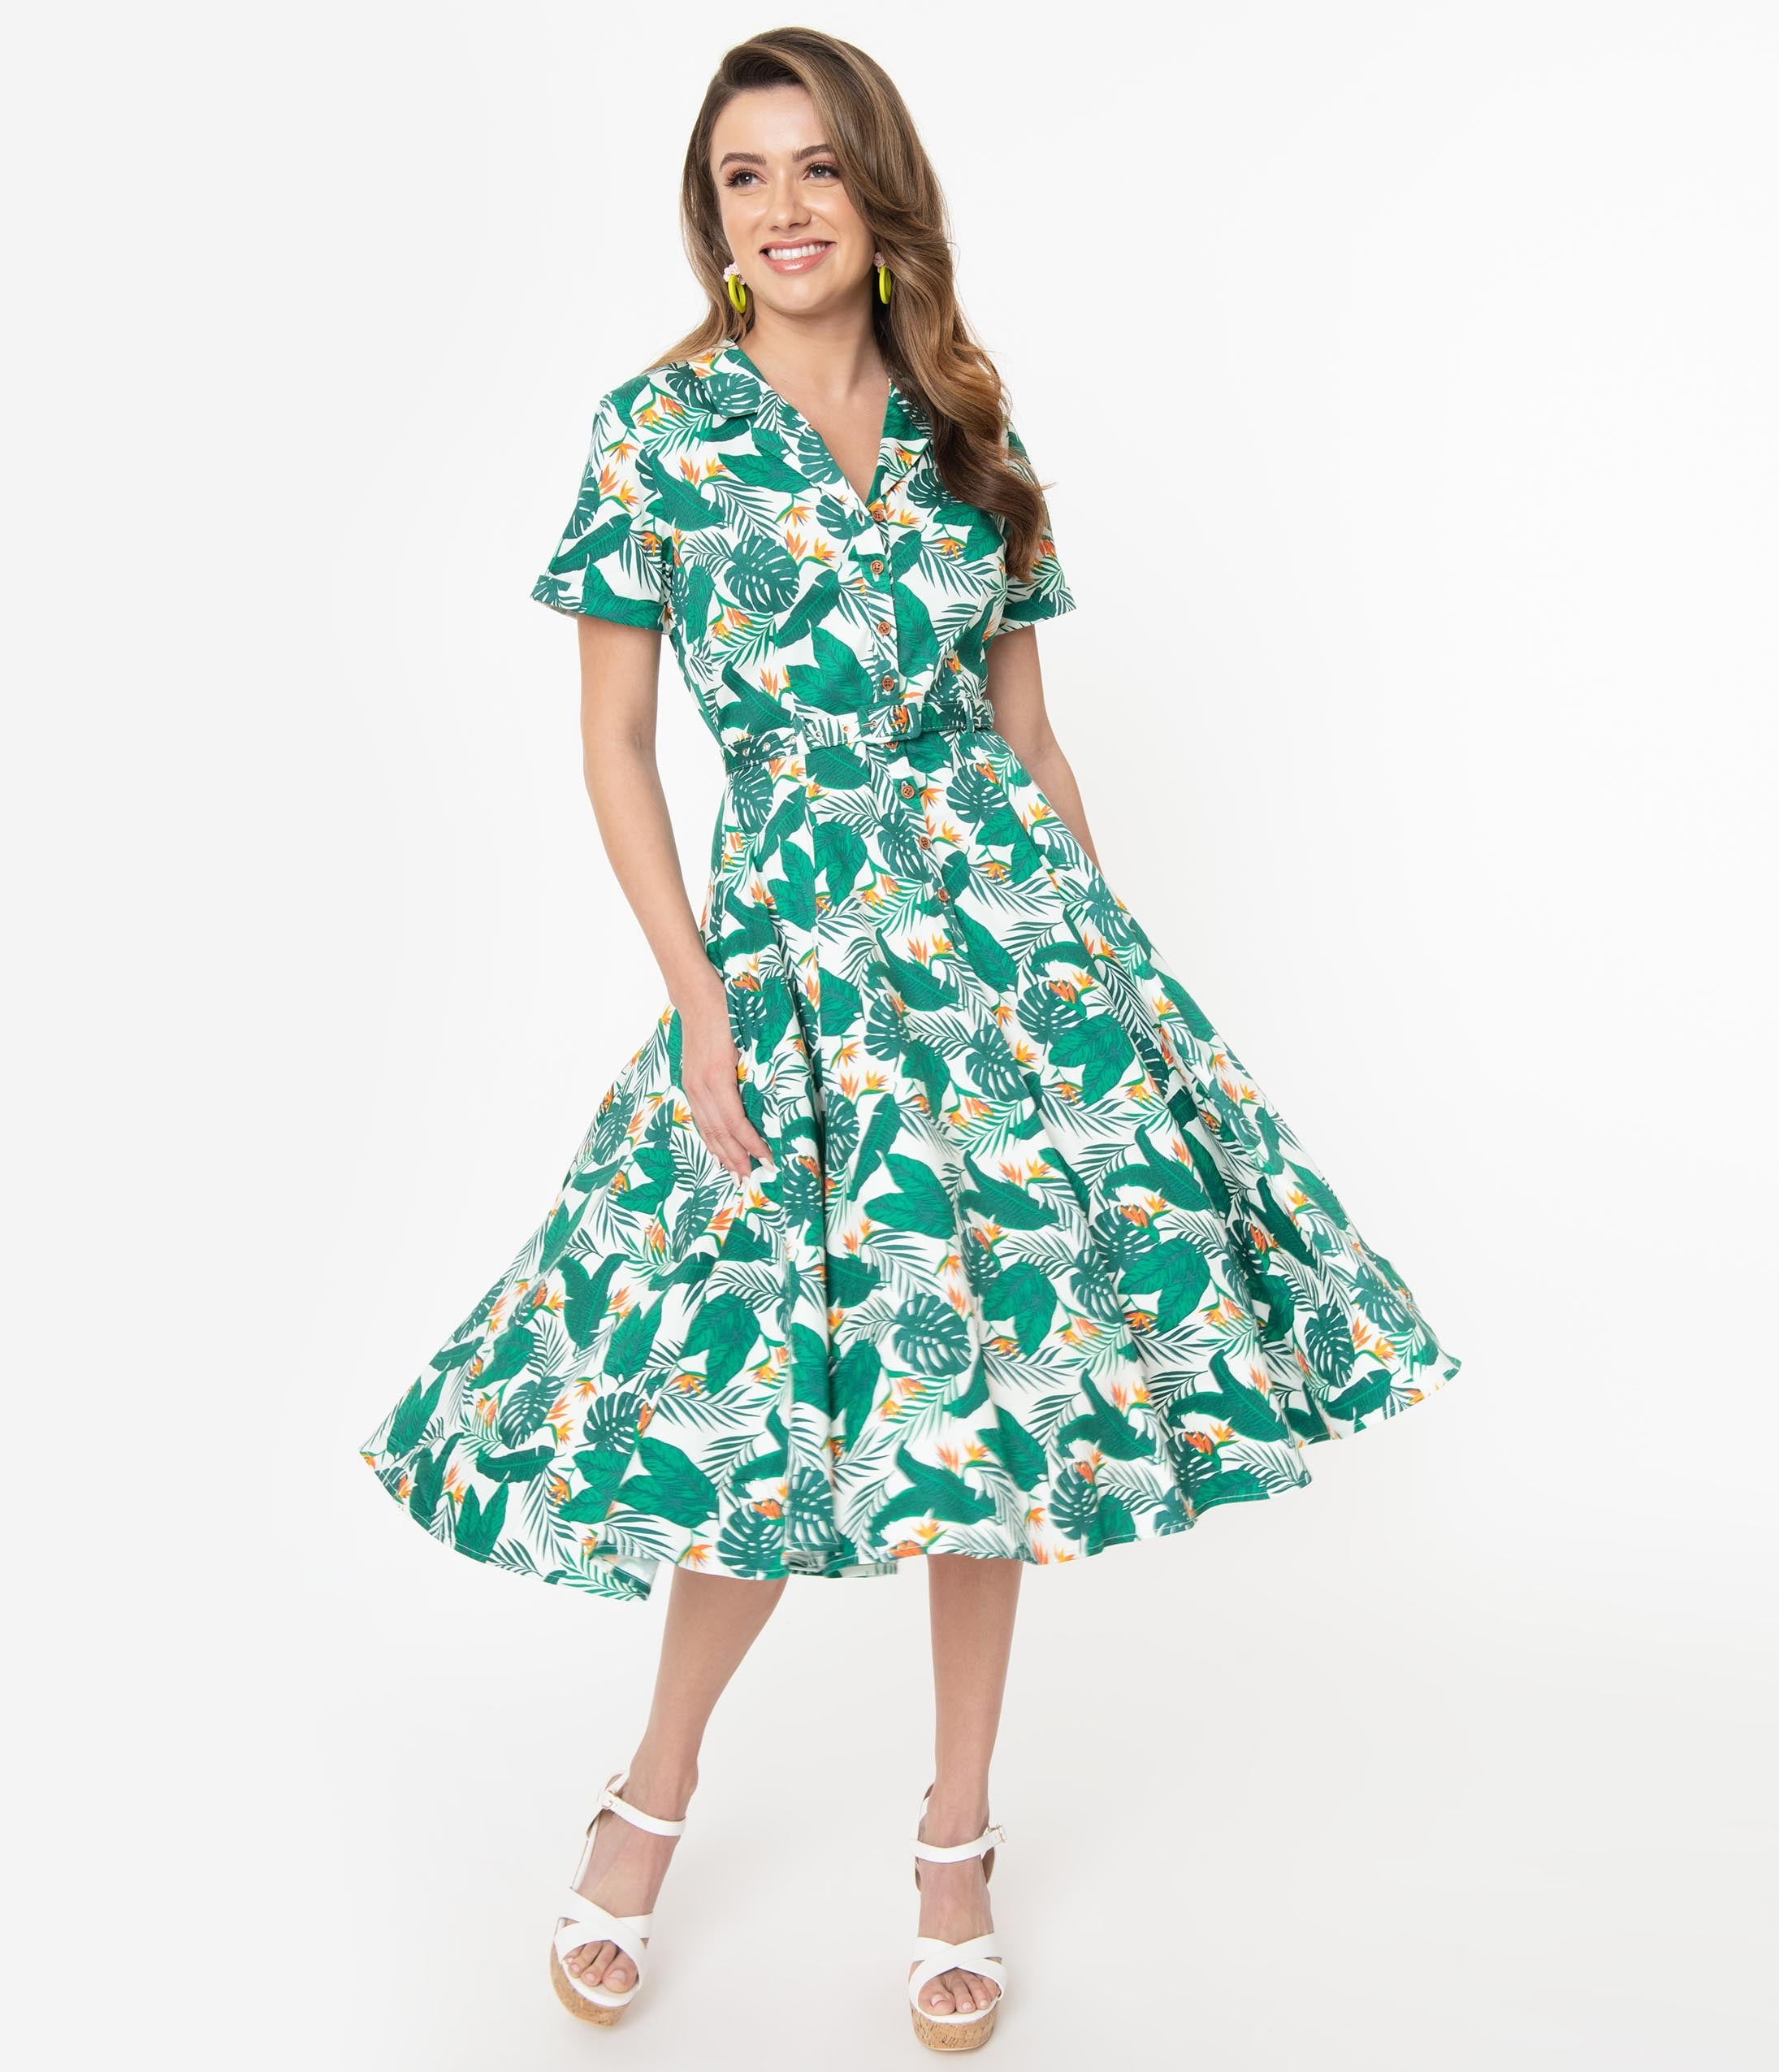 1950s Swing Dresses | 50s Swing Dress Collectif Birds Of Paradise Print Caterina Swing Dress $92.00 AT vintagedancer.com